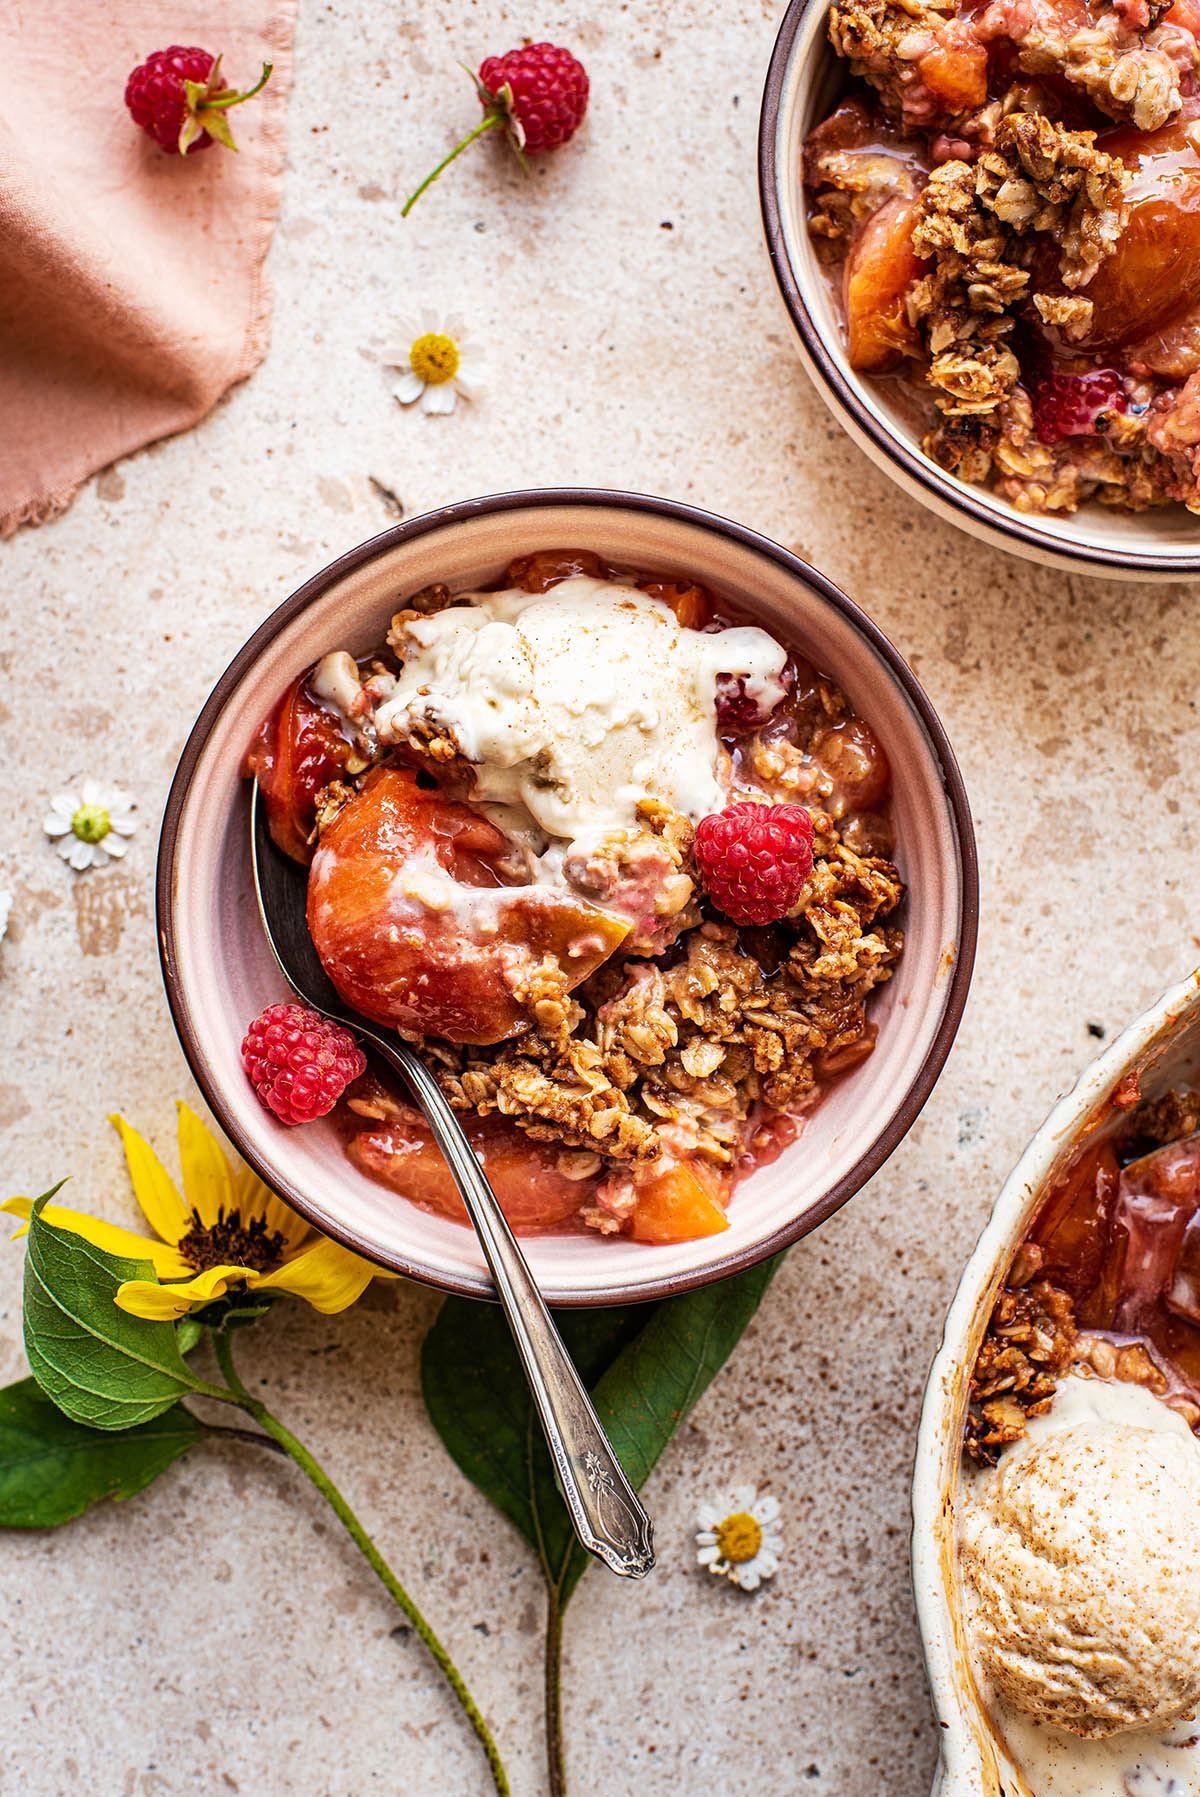 A small bowl of plum crisp with ice cream and raspberries.